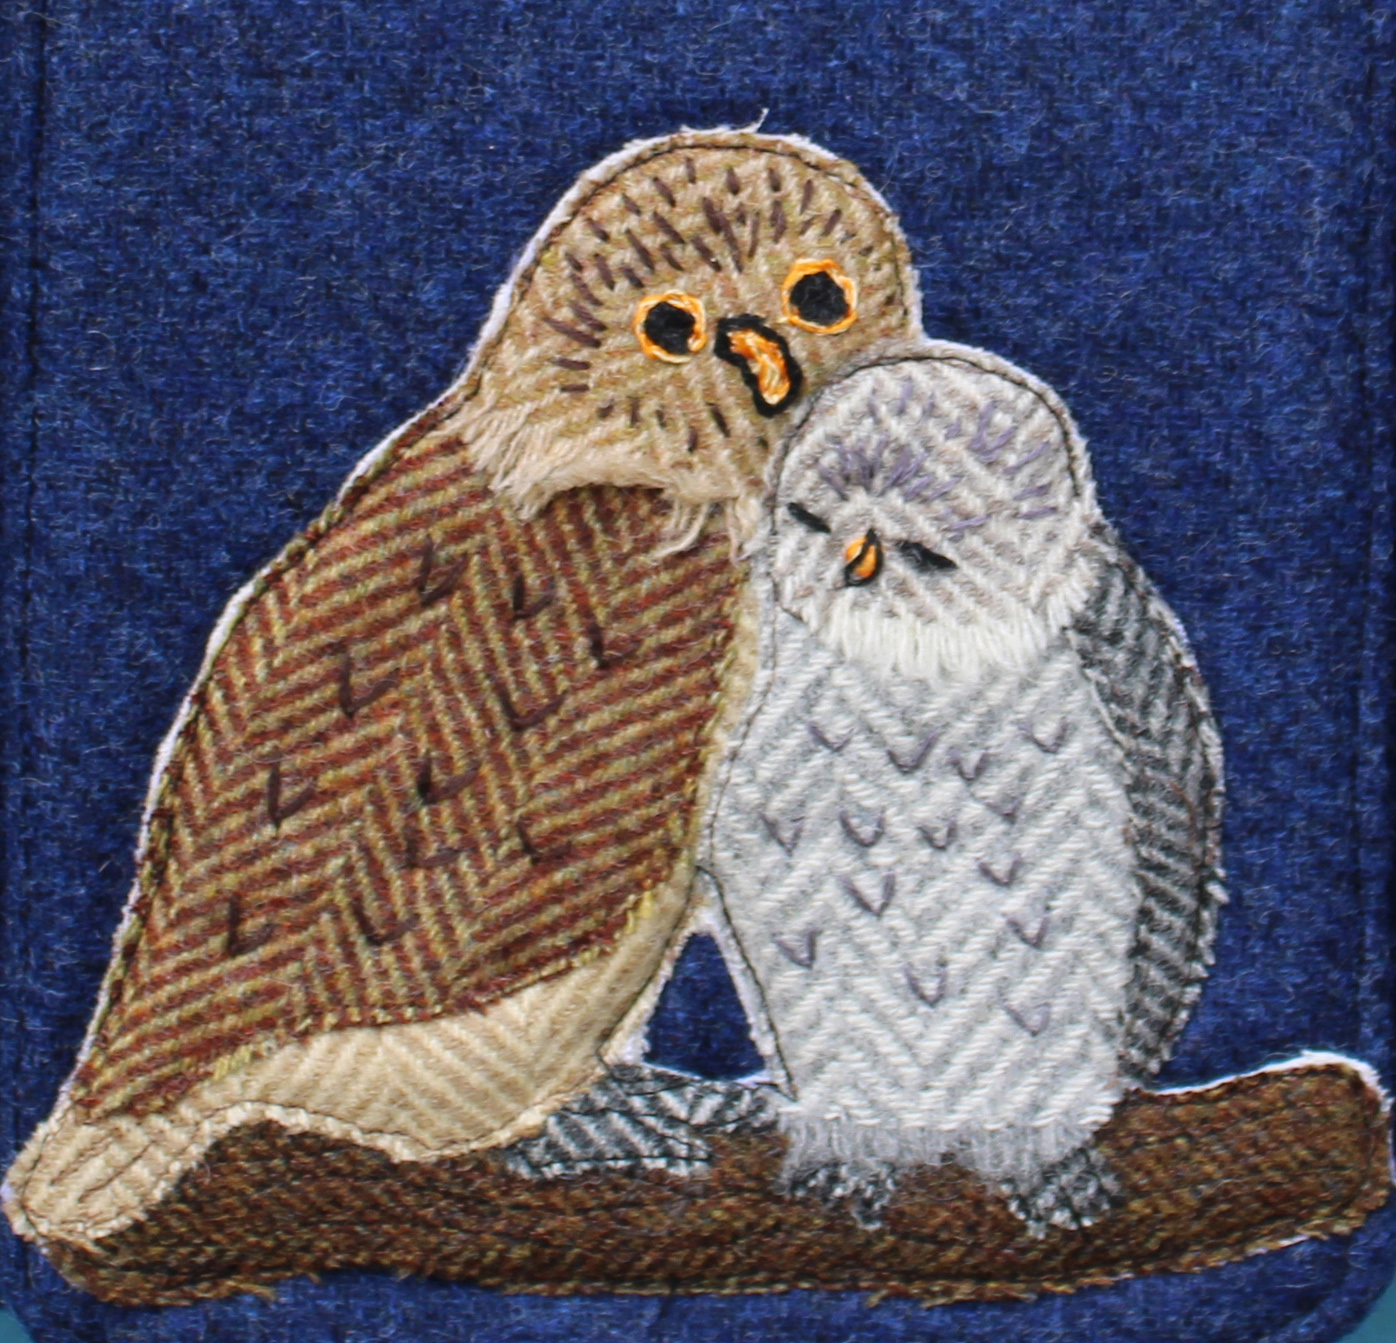 Little Owl Tweed Applique pack with sewing pattern for Hazels Bag